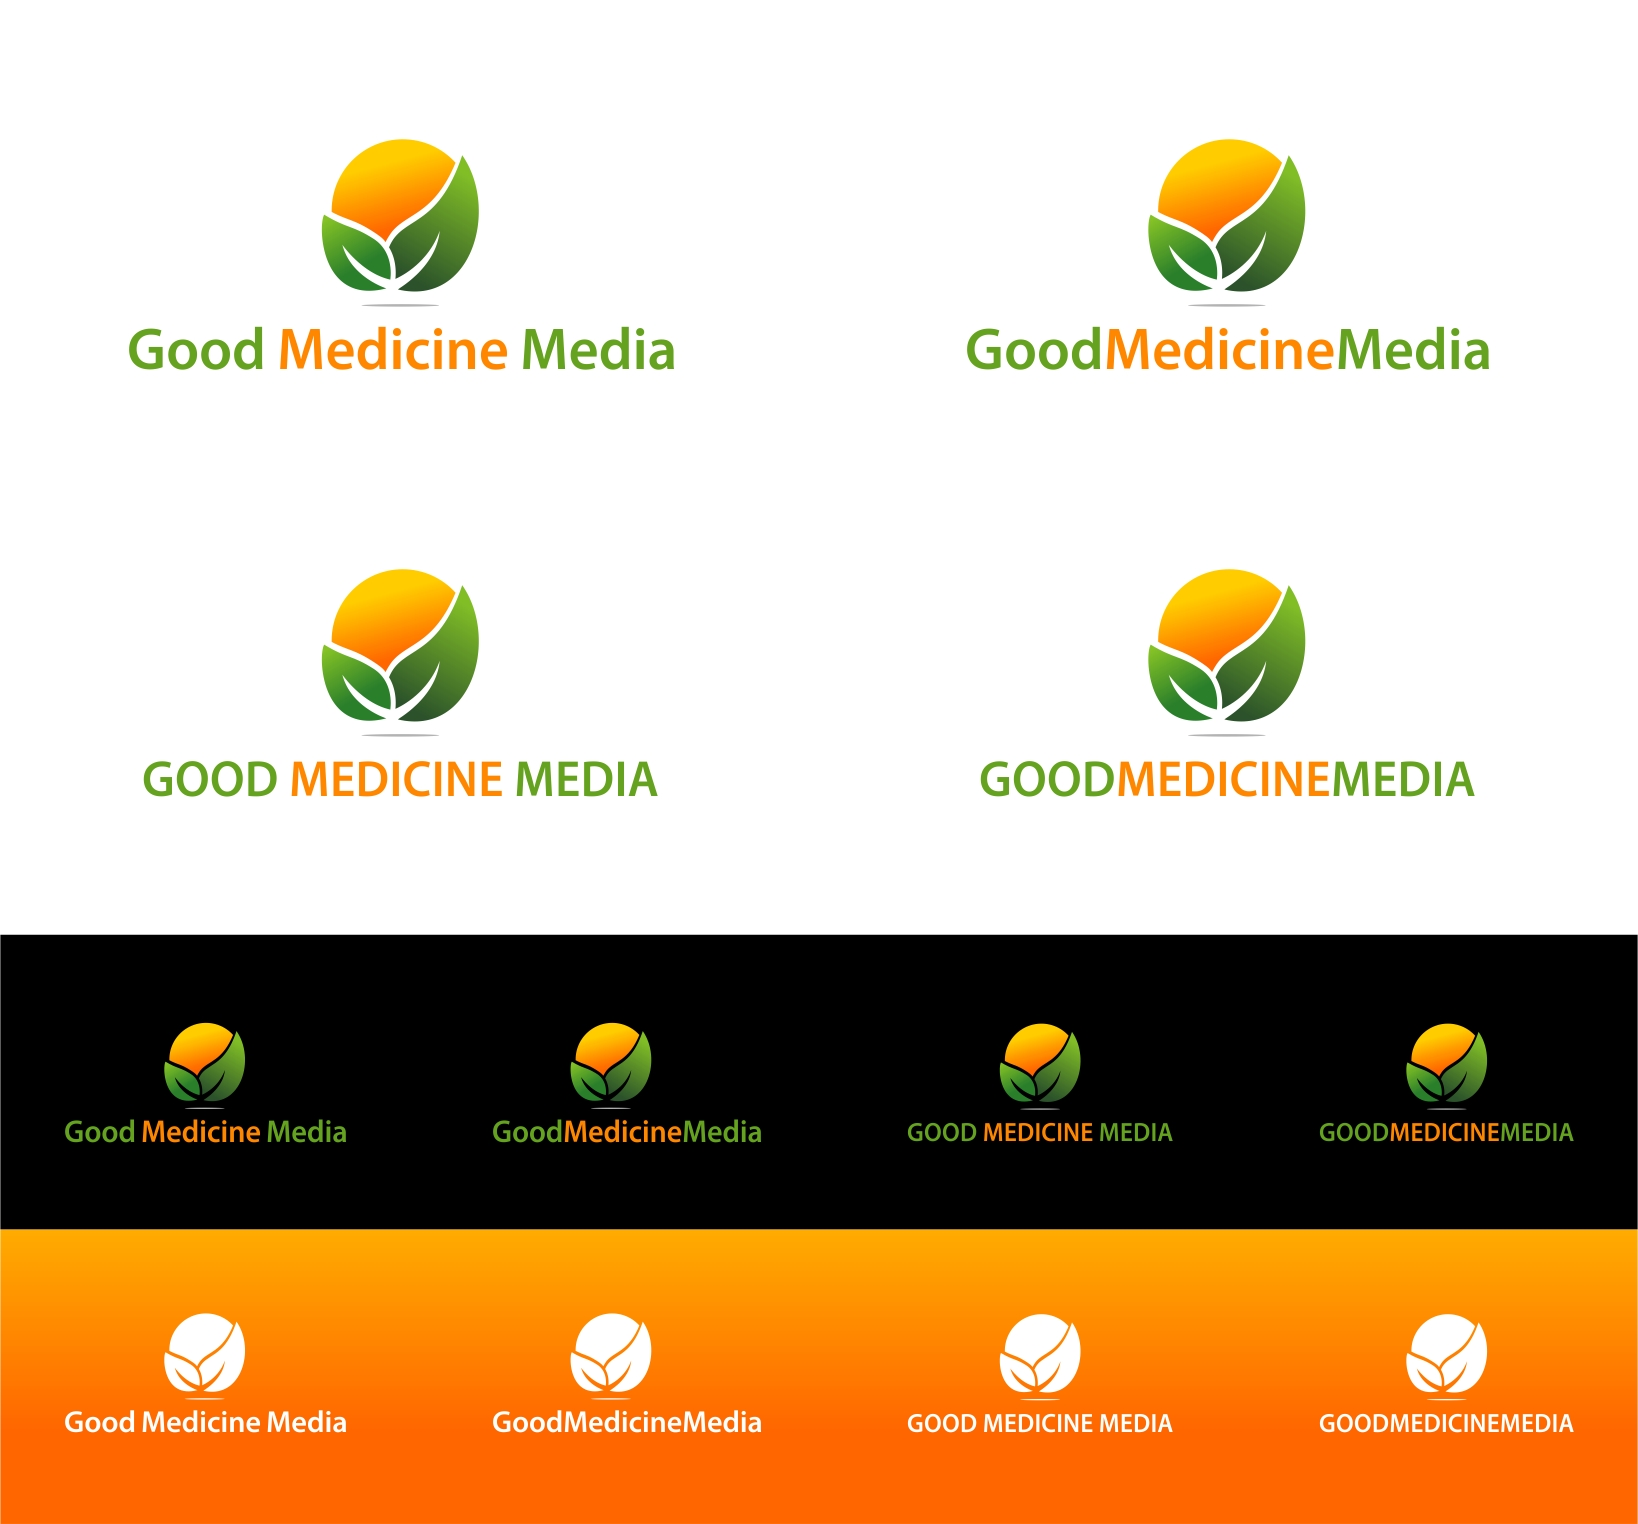 Logo Design by haidu - Entry No. 271 in the Logo Design Contest Good Medicine Media Logo Design.